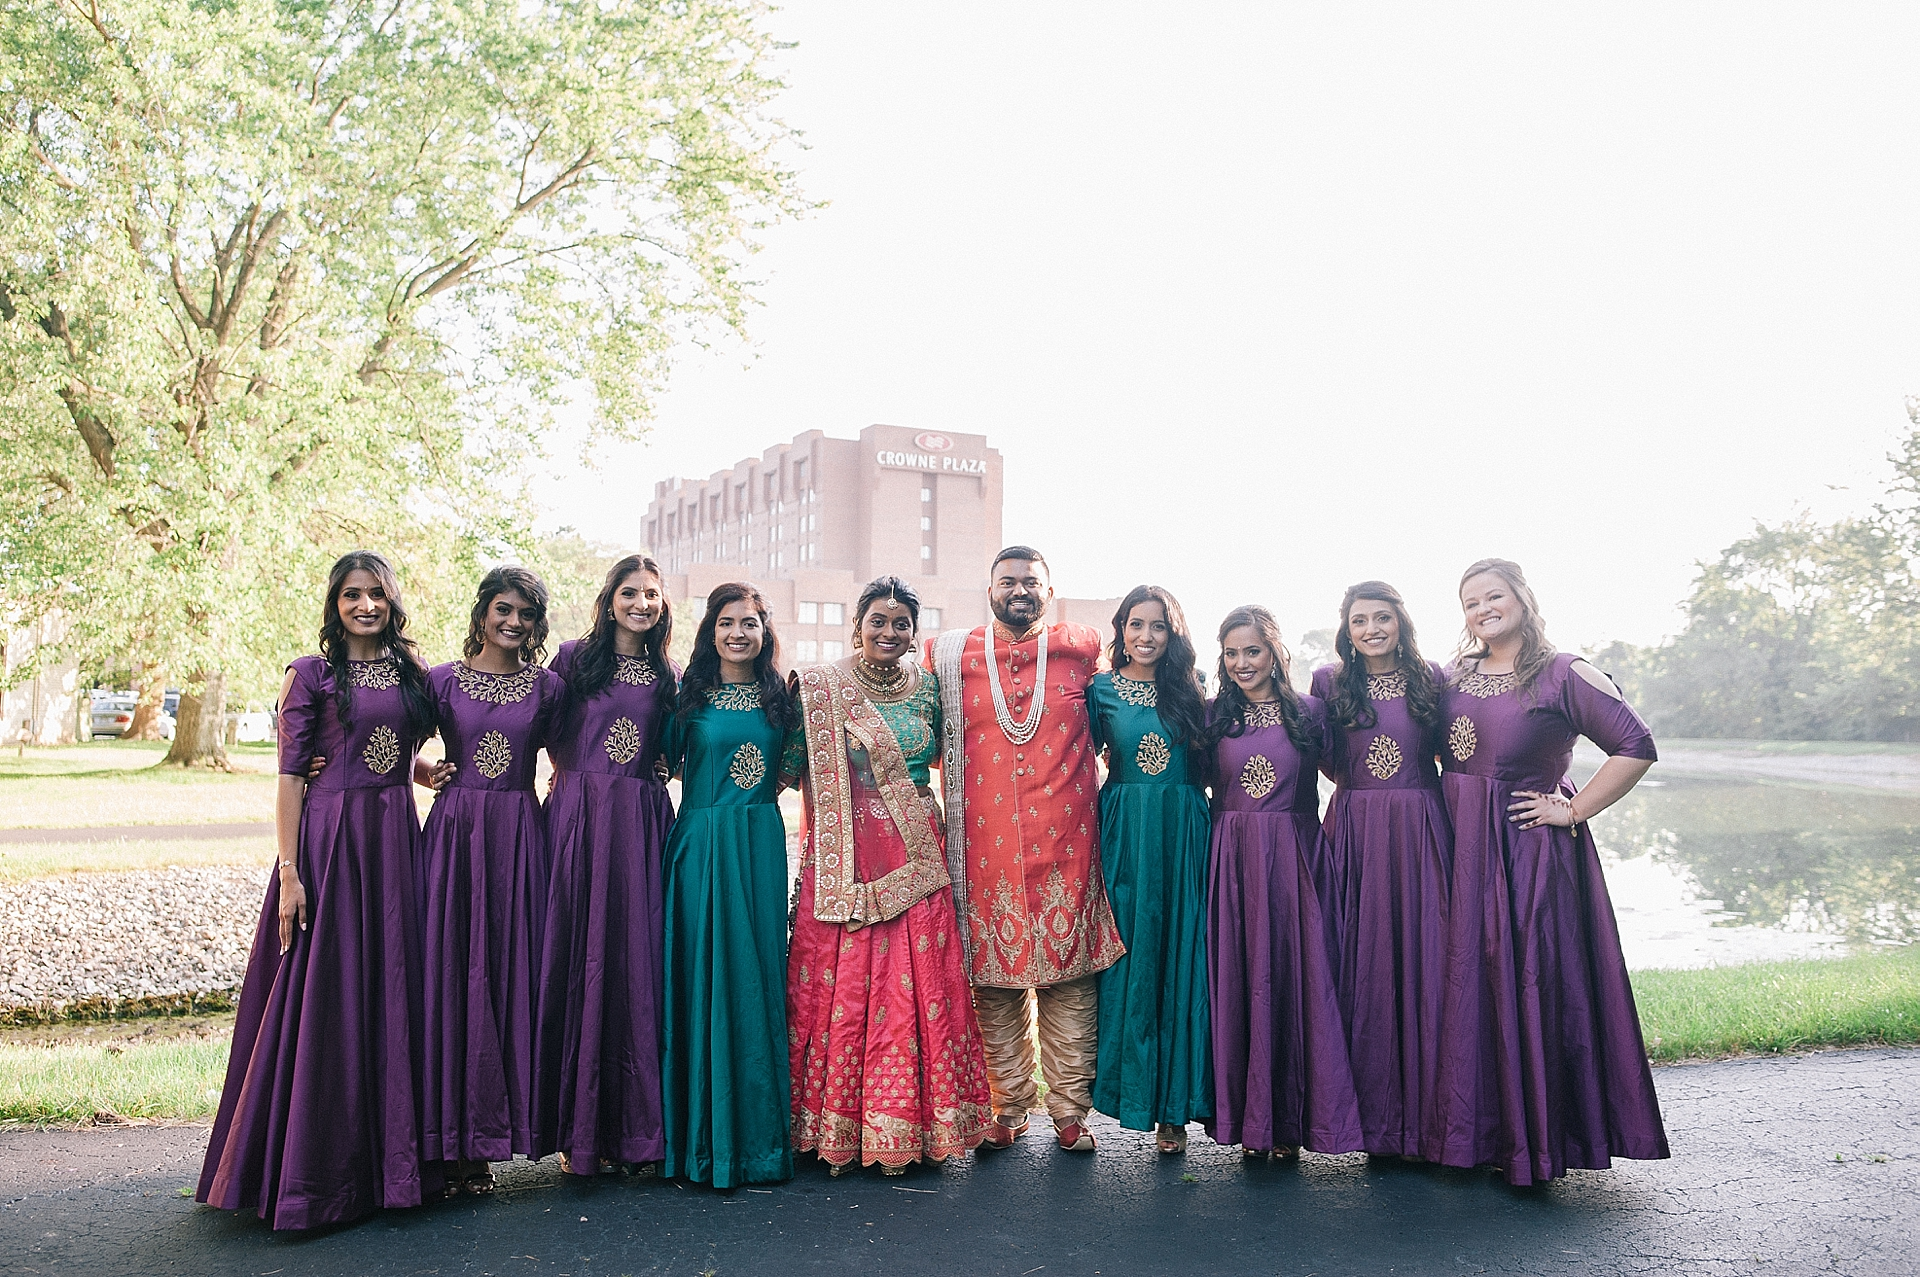 Prexa_Harry_Columbus_Crown_Plaza_Indian_Wedding0042.jpg